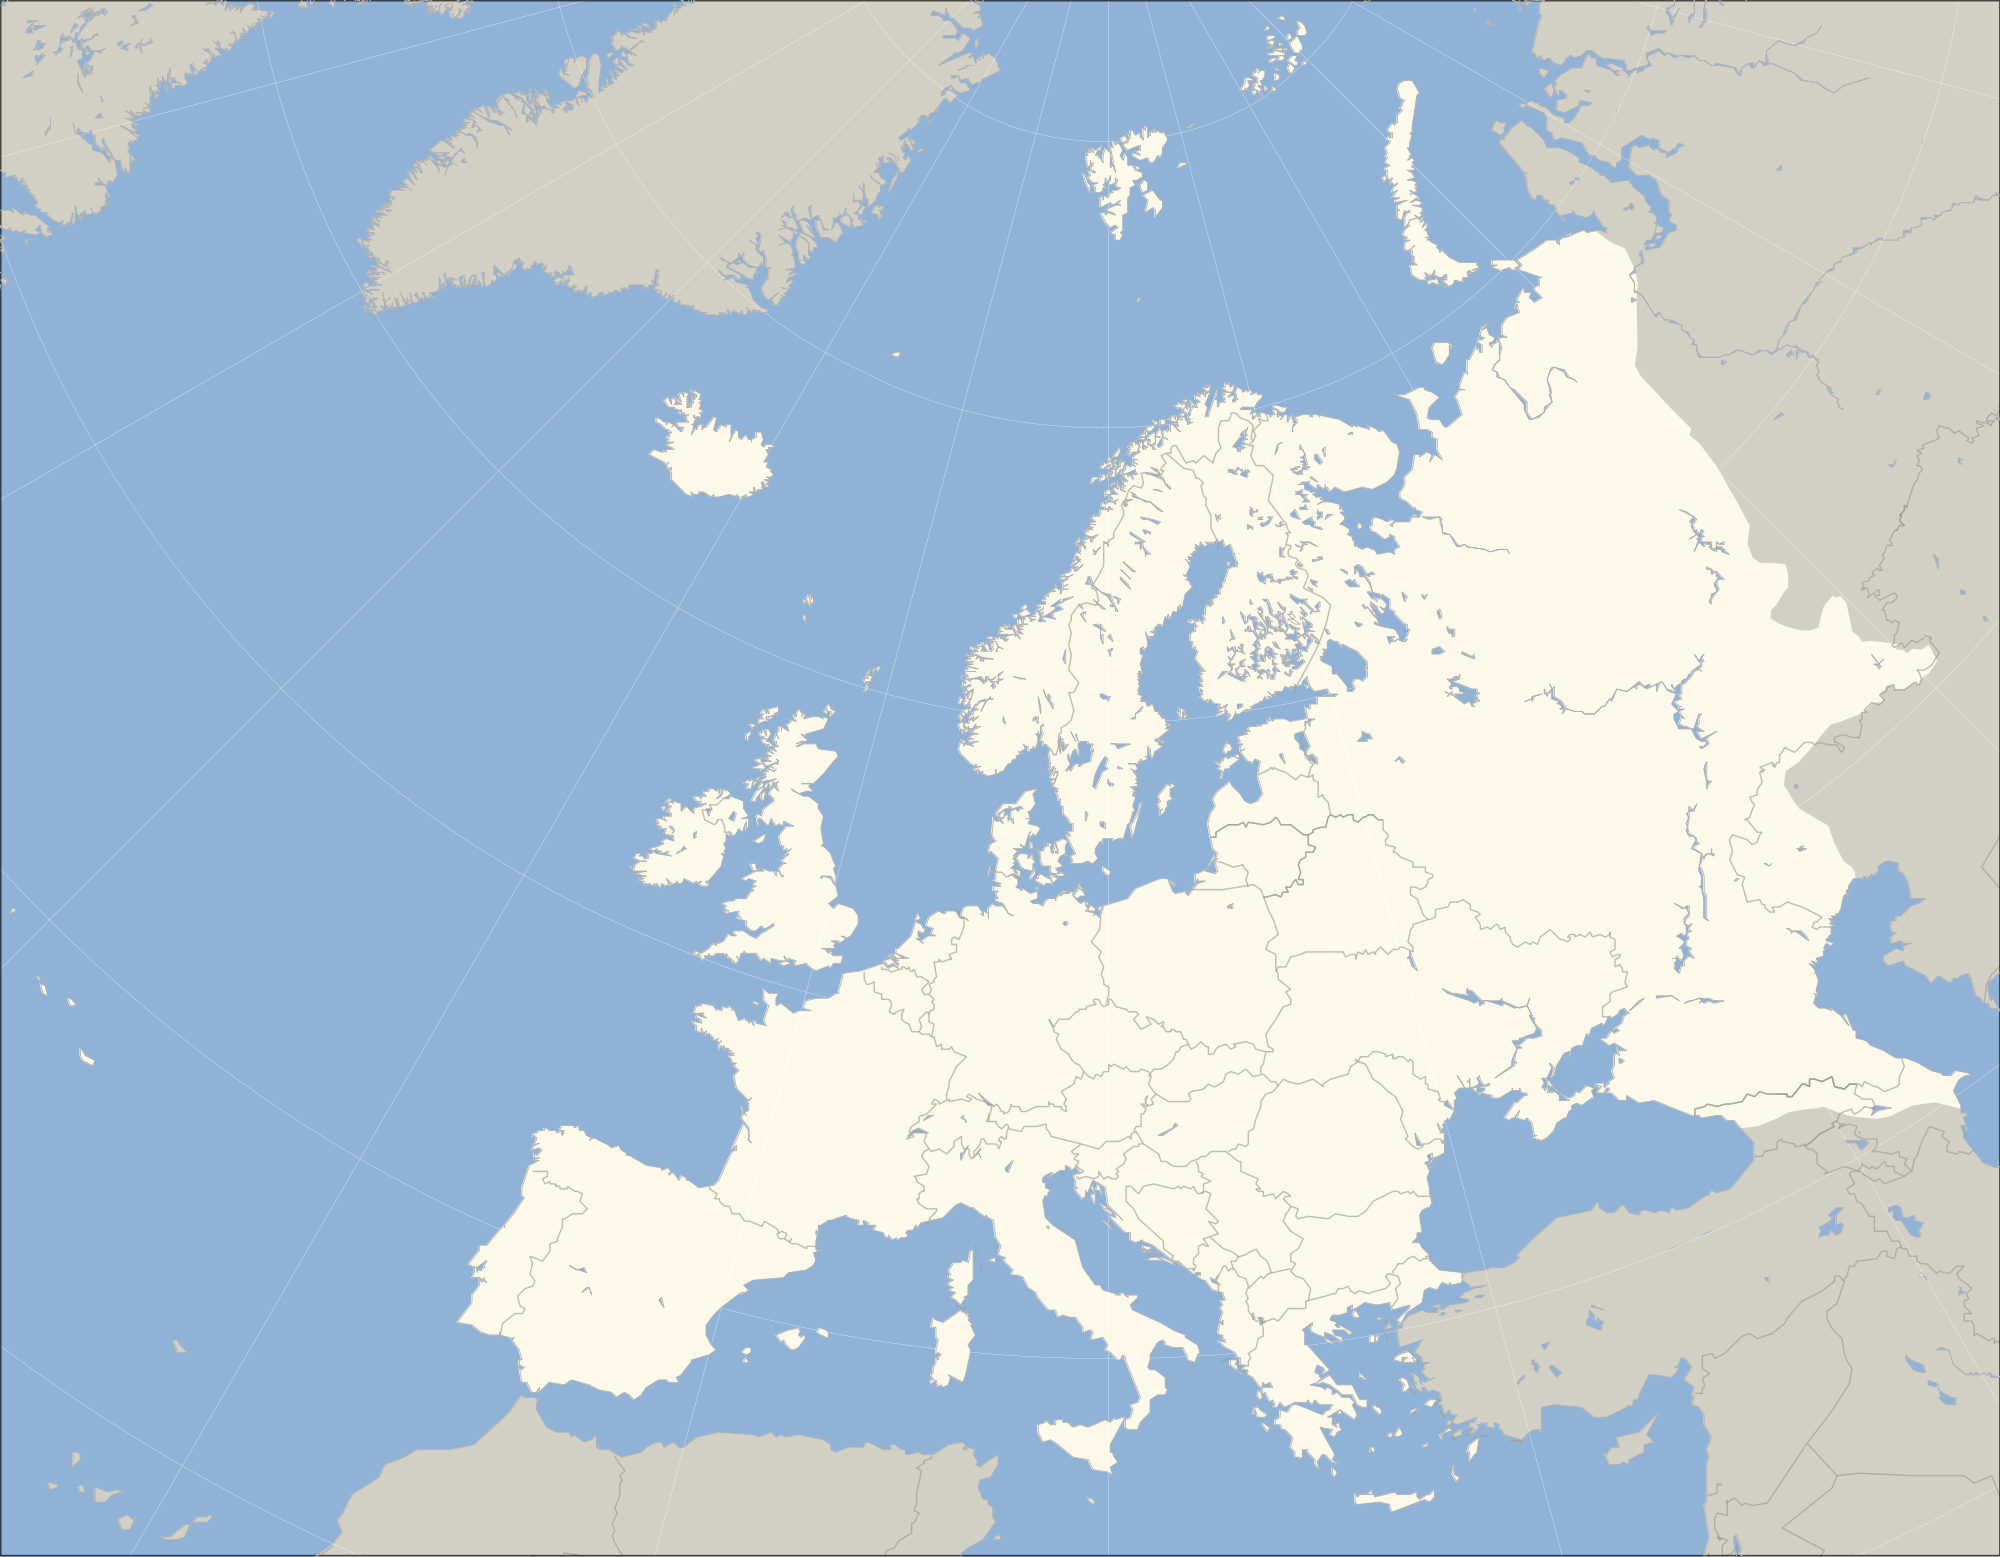 Europe outline map - F...